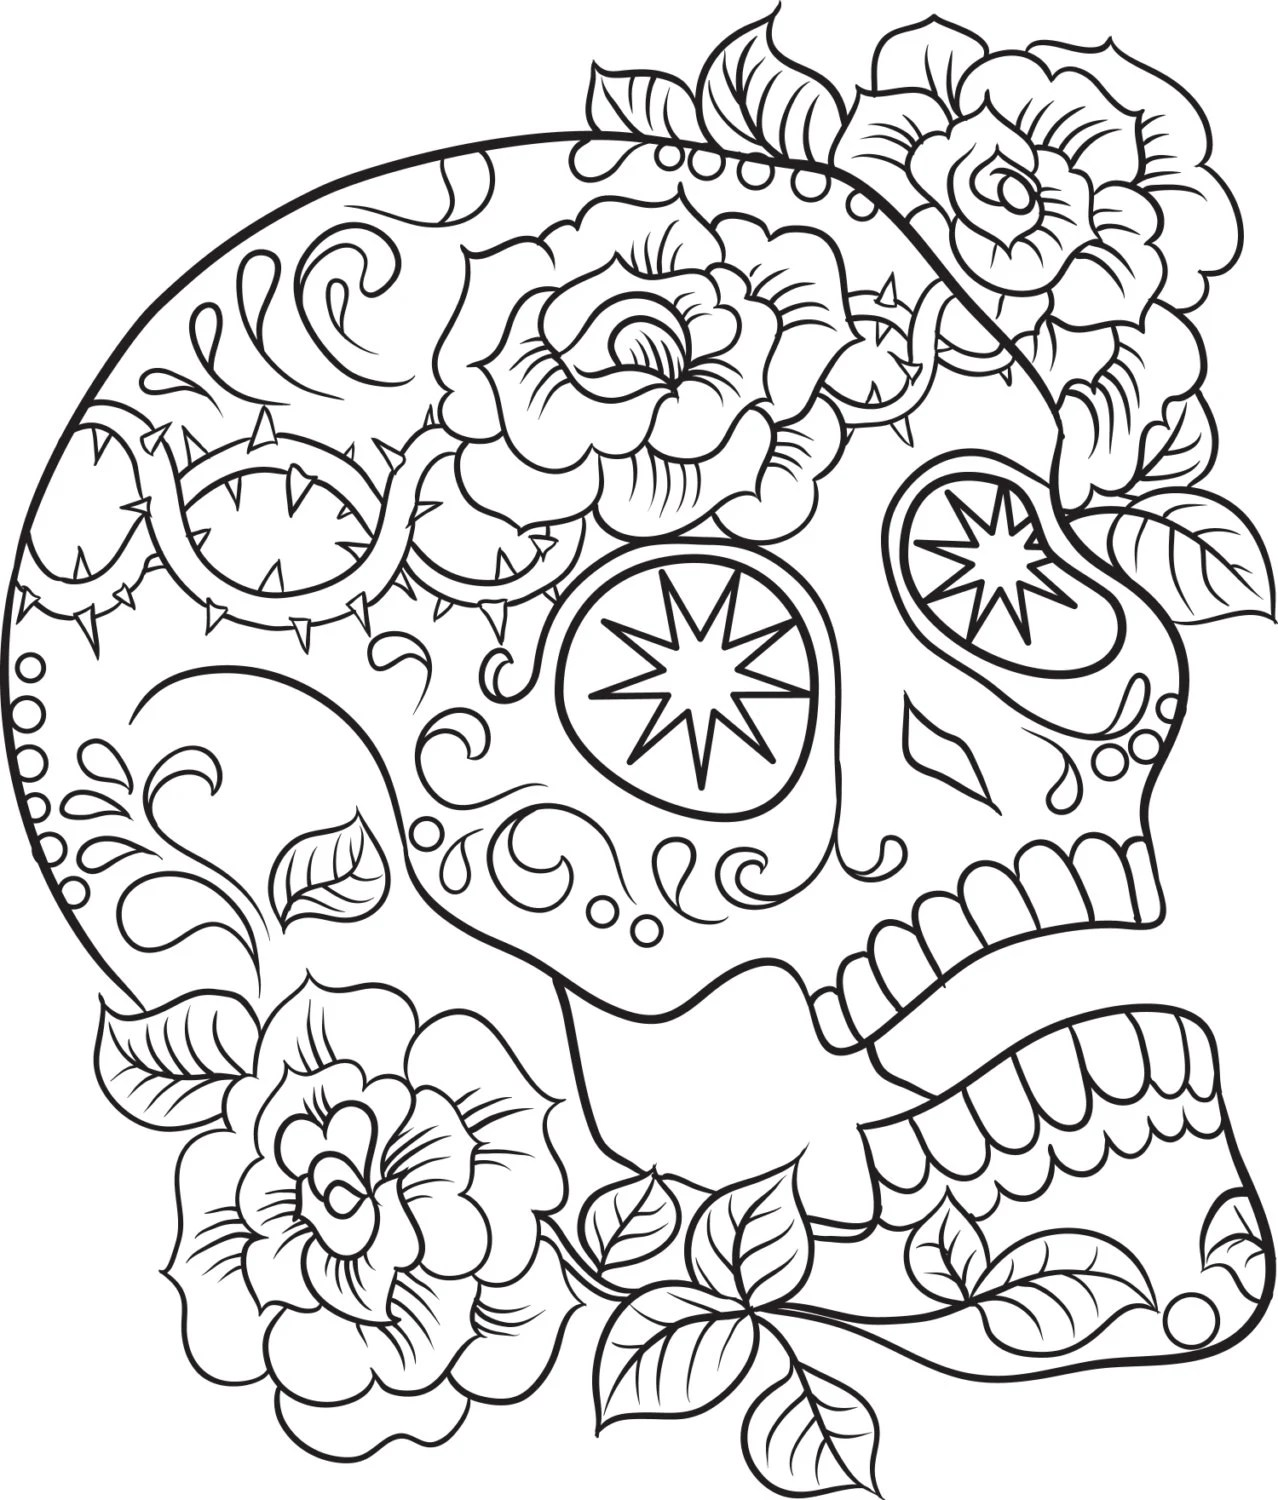 Color Me Sugar Skulls, Coloring Ebook, Print Out and Color